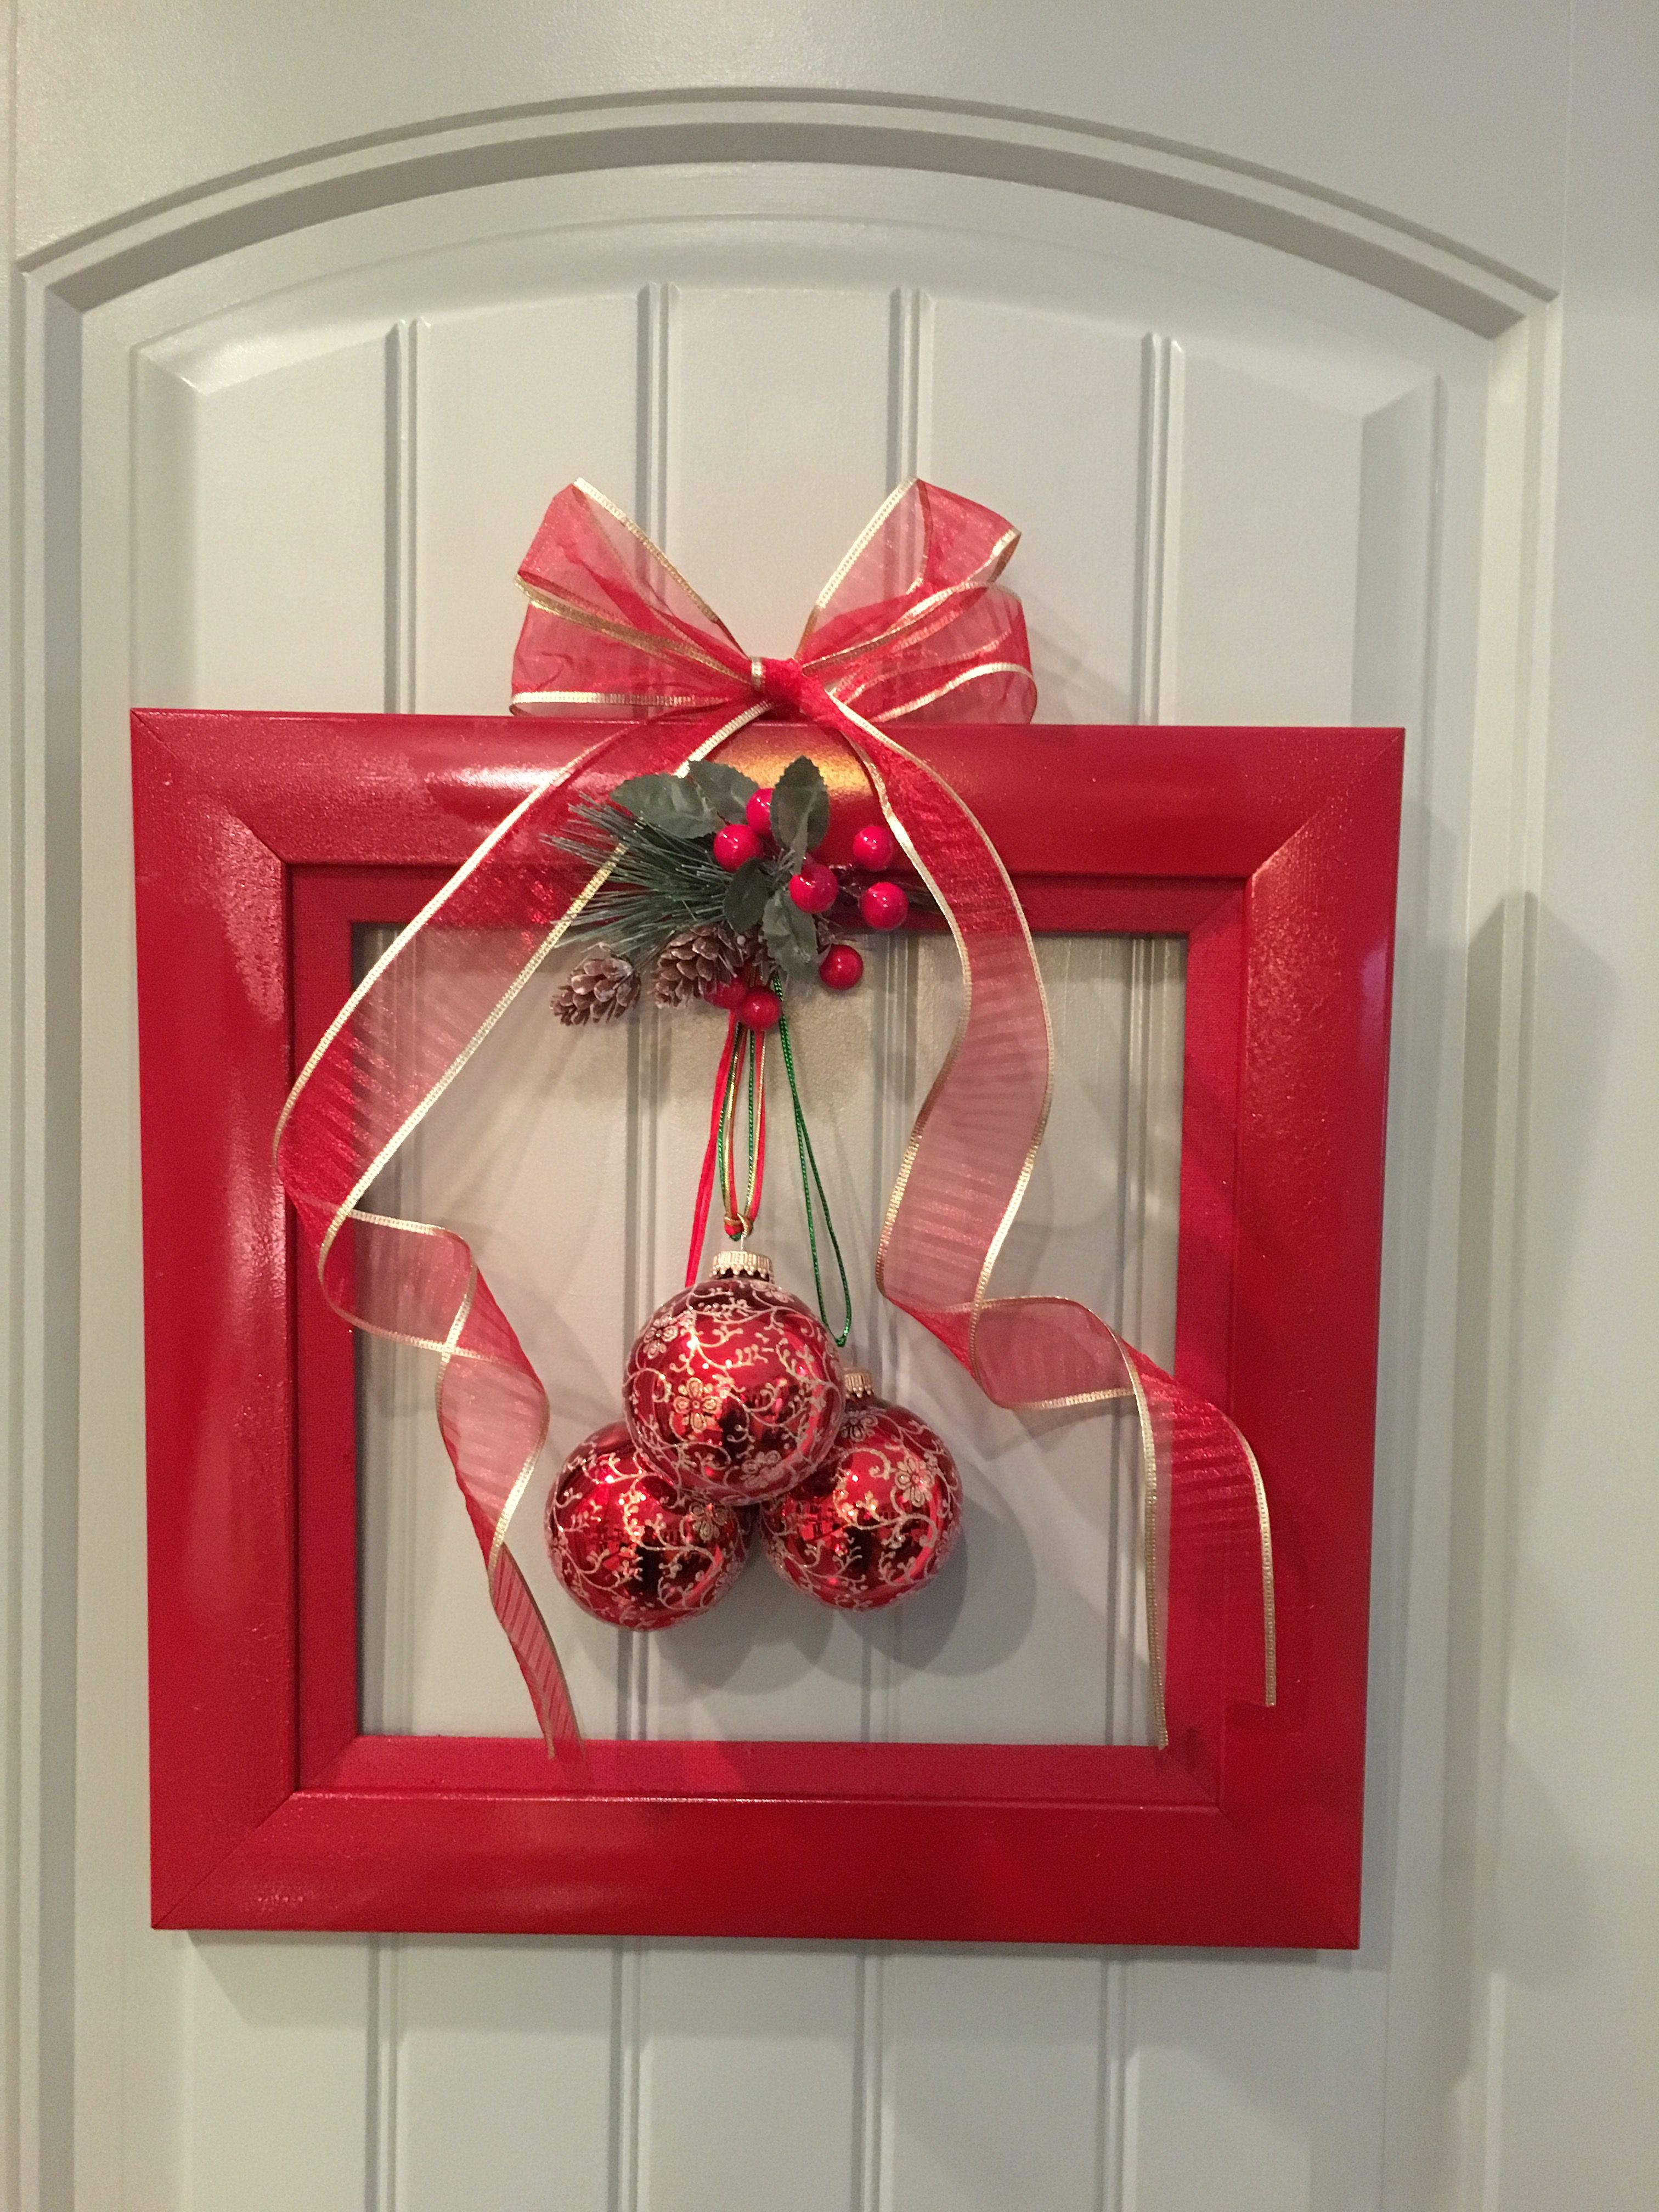 Pin by Marian Williamson on Craft Ideas Christmas